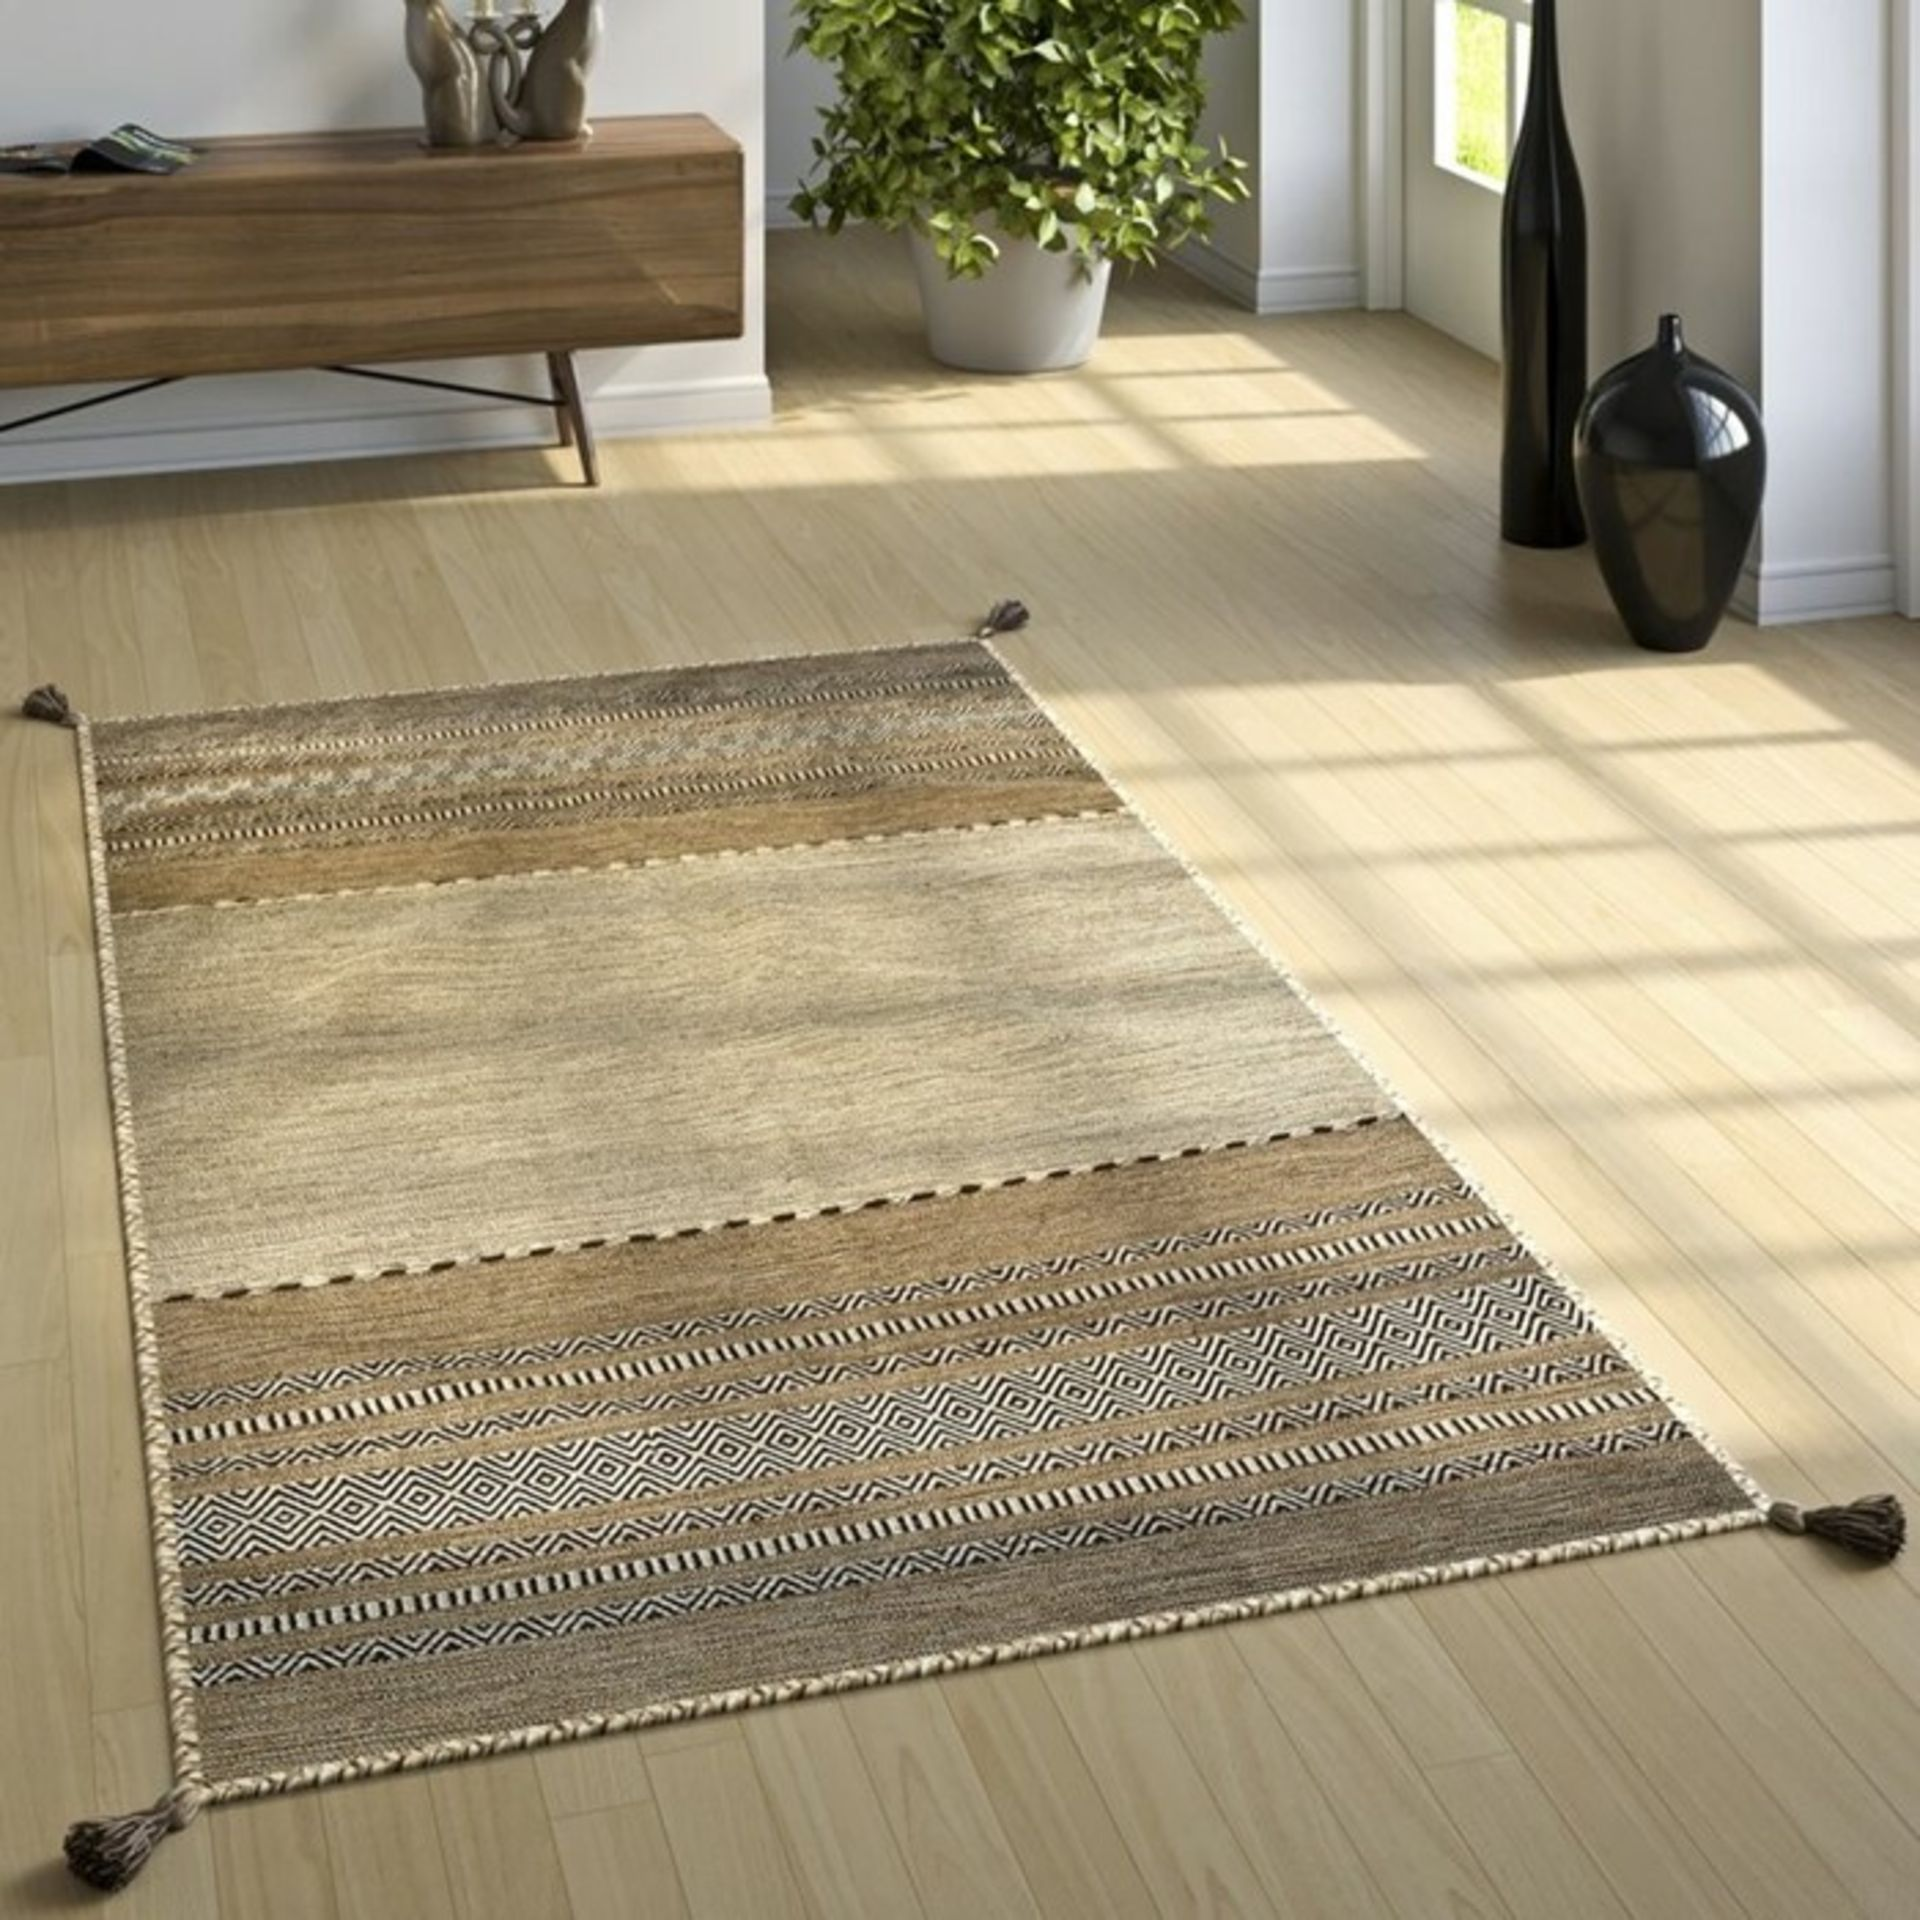 World Menagerie, Earby Handmade Kilim Cotton Beige Rug RRP £109.99 (ALAS6620 - 18699/37) - Image 2 of 2